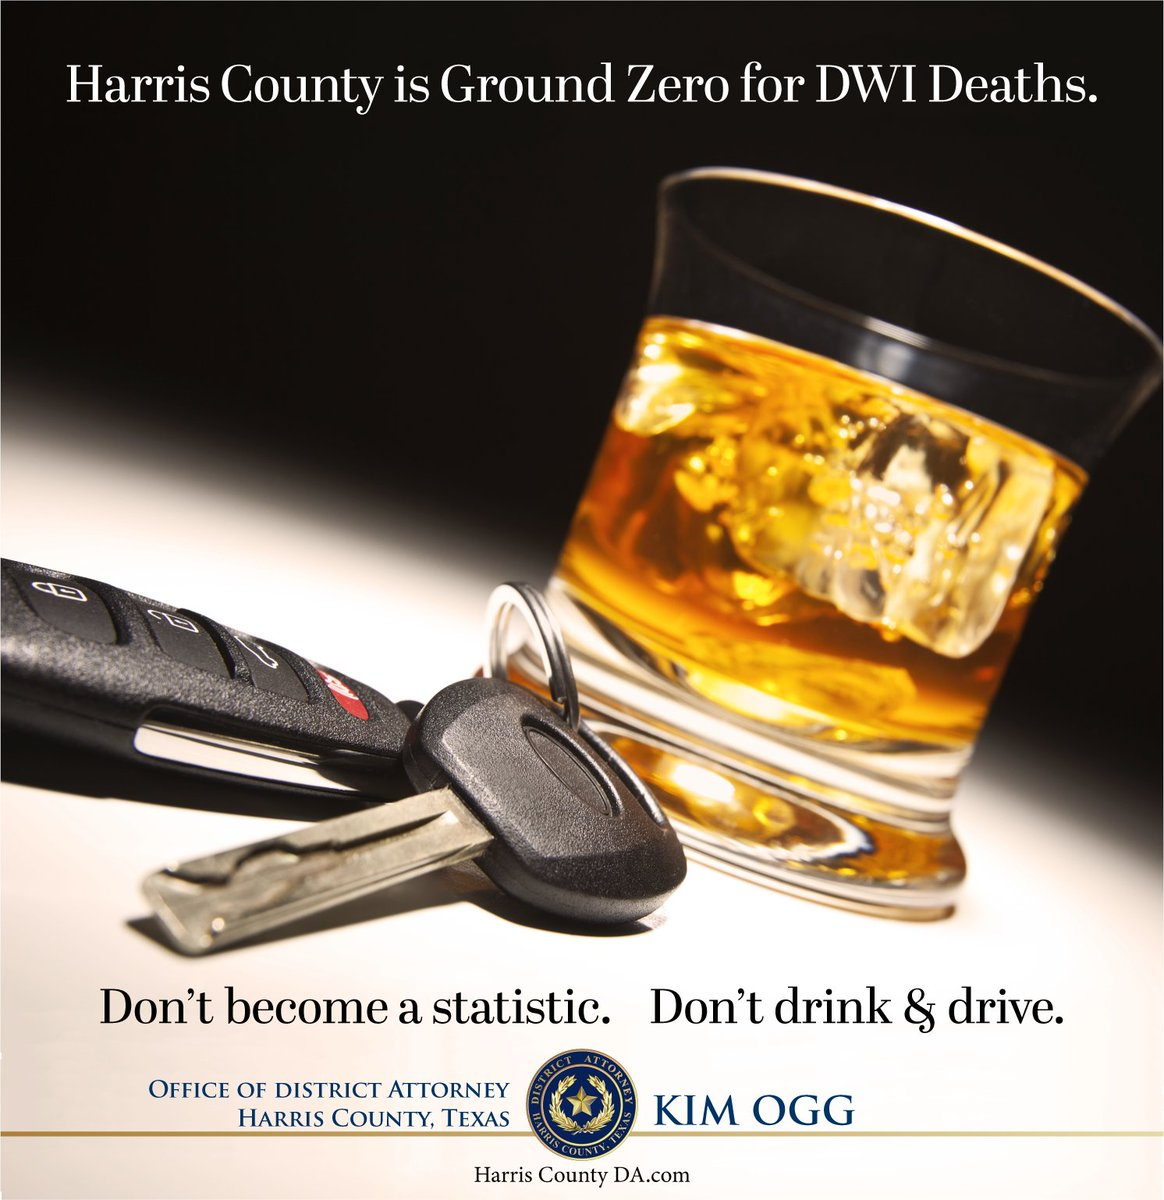 Find a designated driver, take ride share or call a friend...but do not drive drunk.